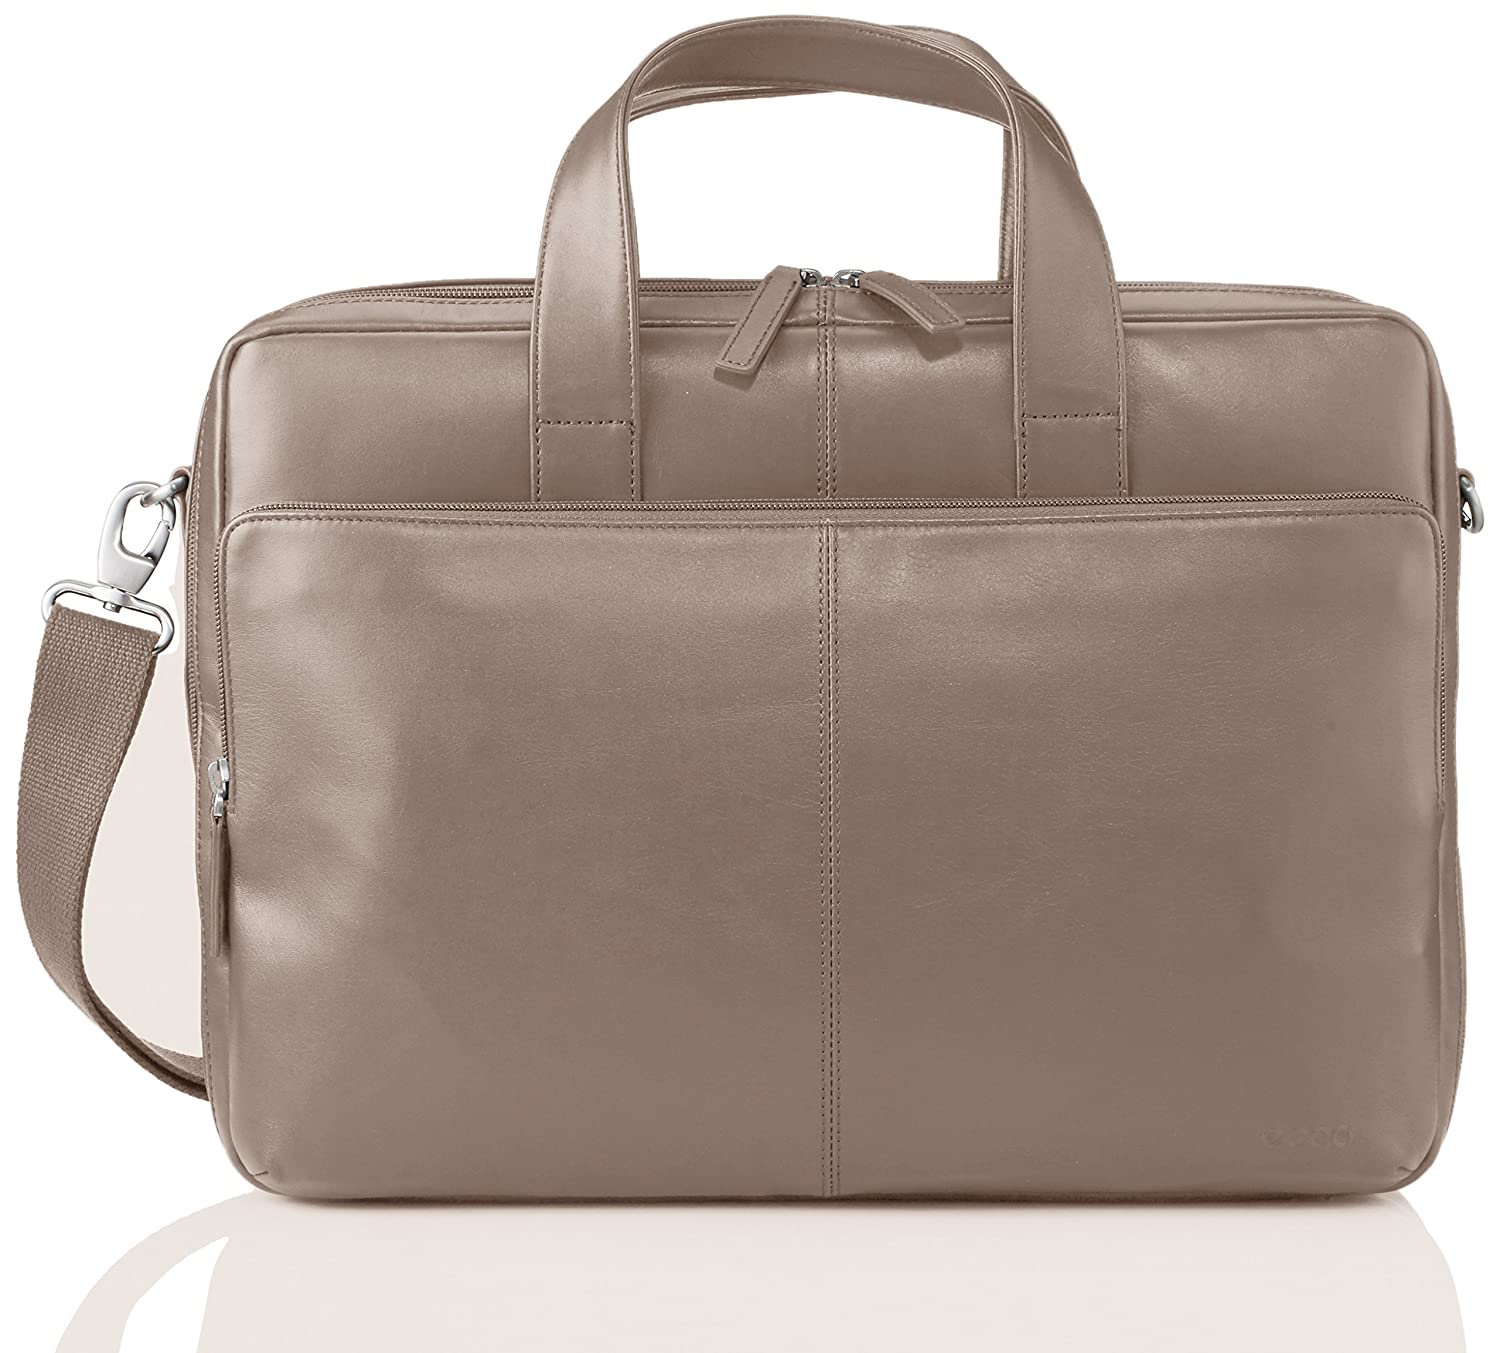 cbbc121e2e9 Amazon.com: ECCO Foley Laptop Bag, Stone, One Size: Golf Overstock